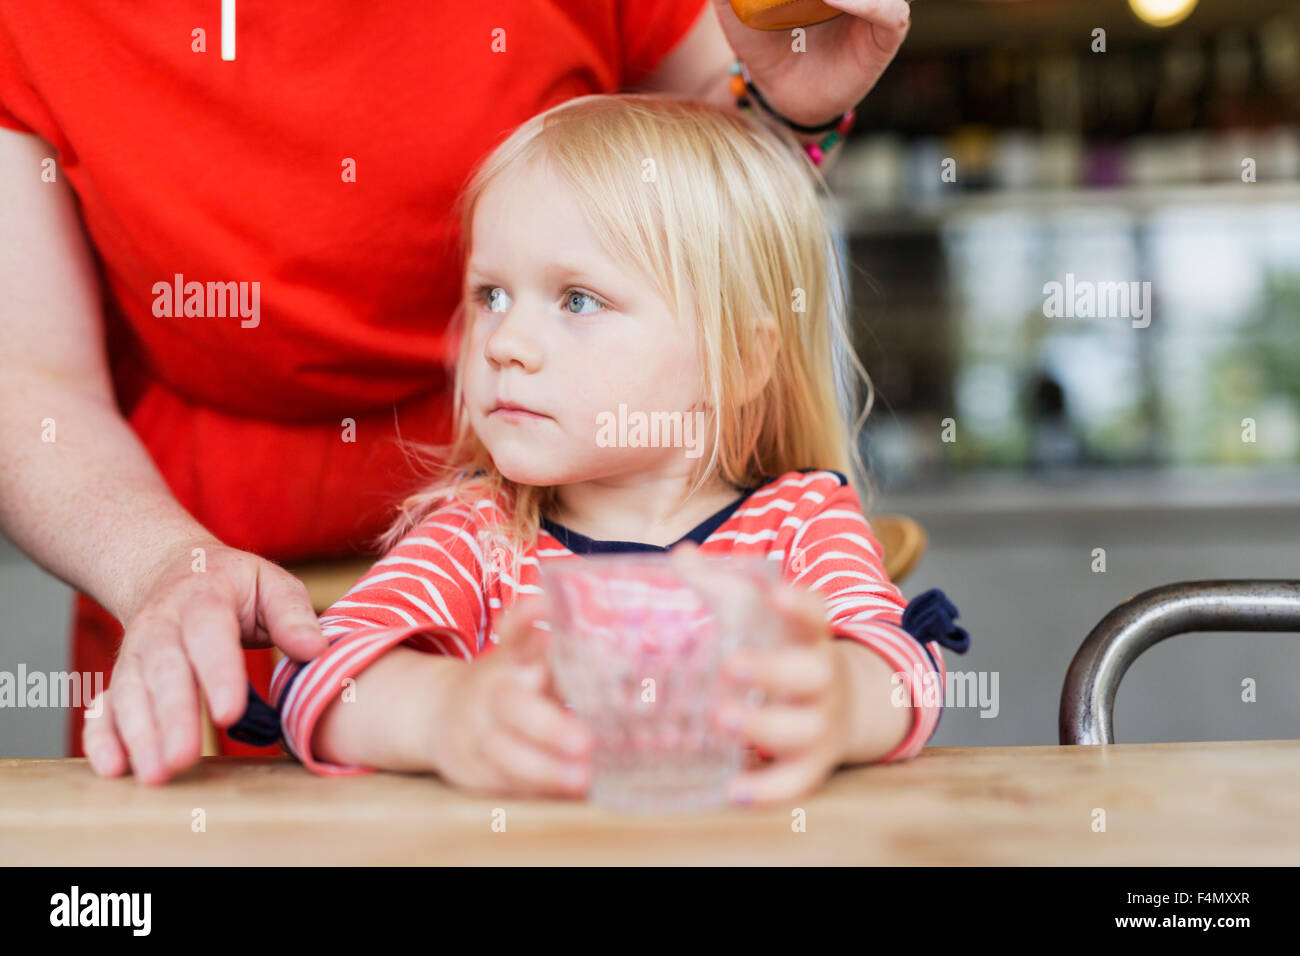 Mother standing behind daughter holding drinking glass at cafe table - Stock Image